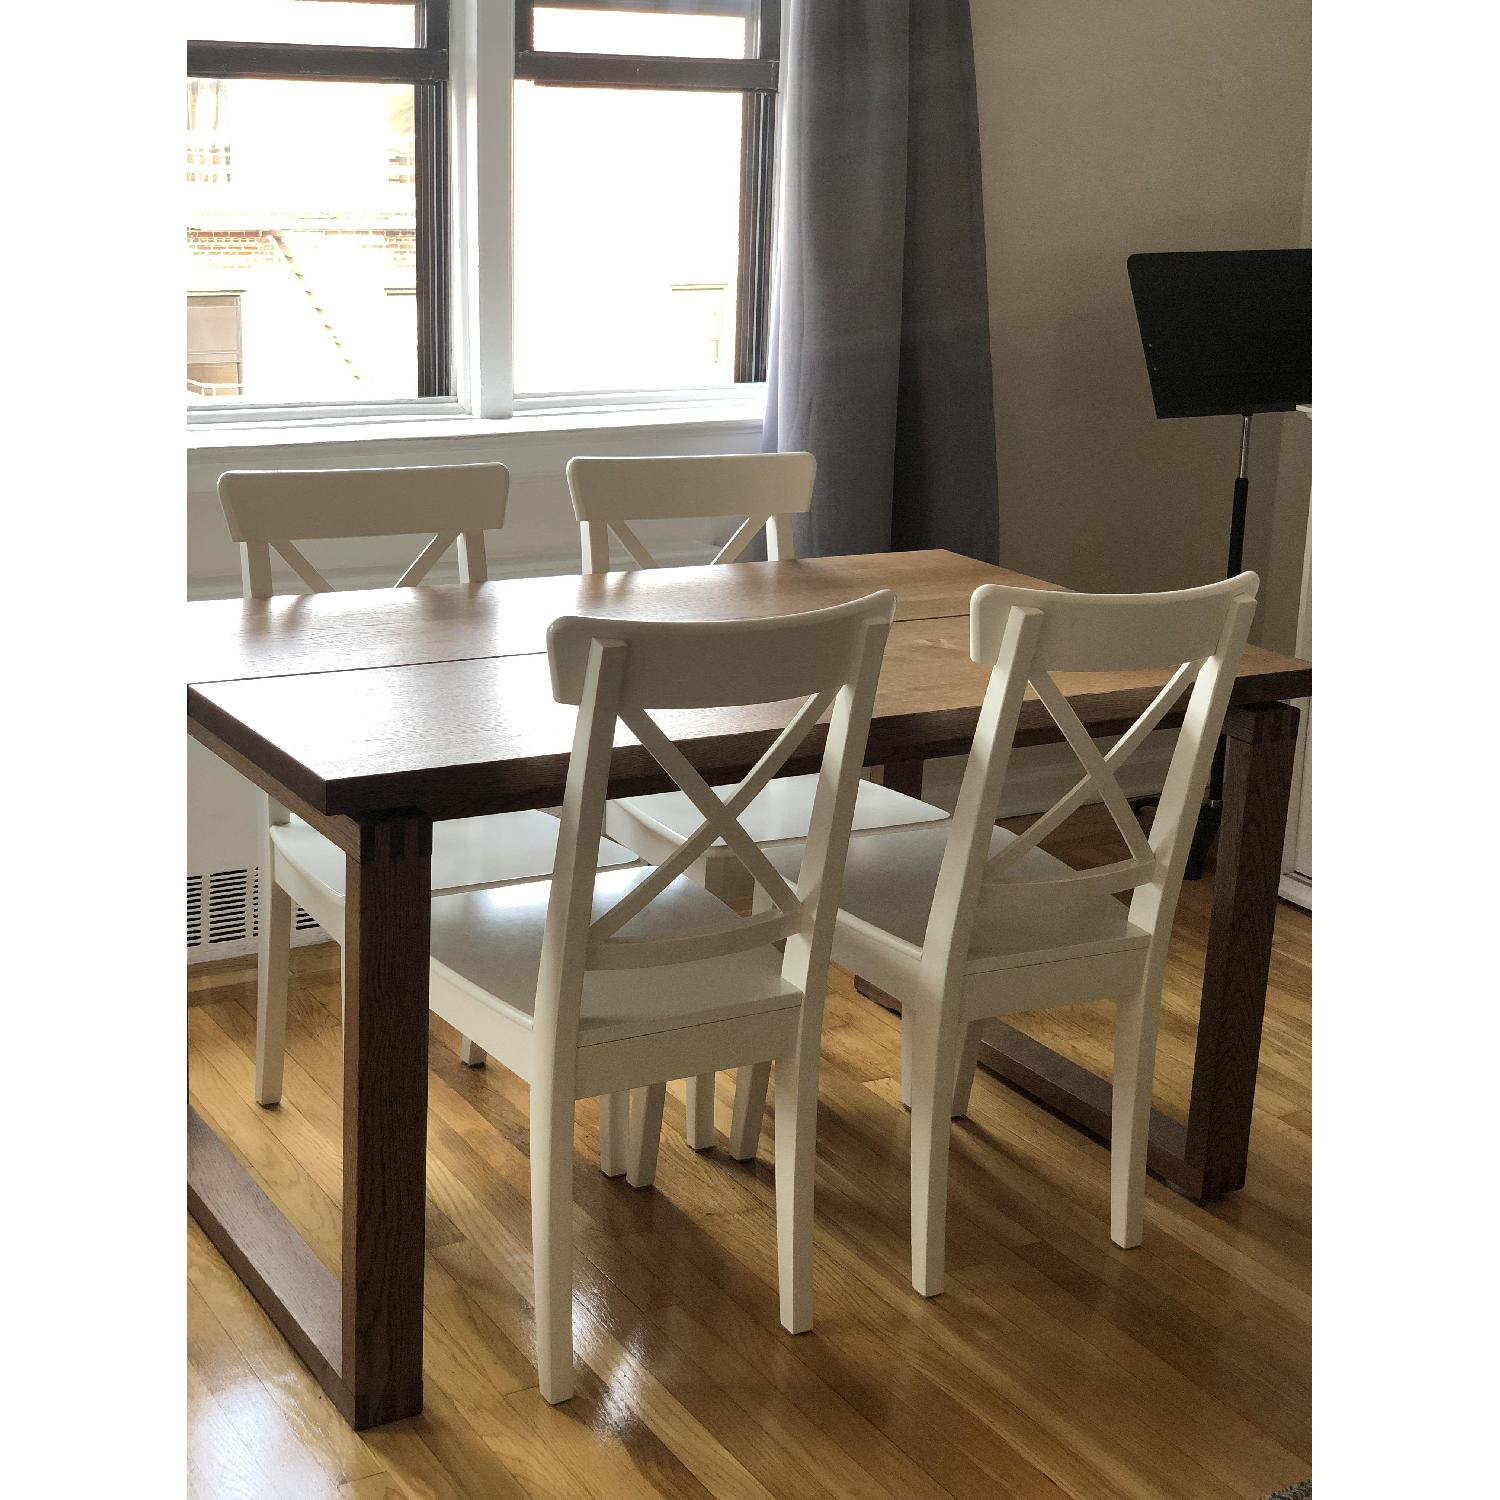 Ikea Ingolf White Dining Chairs - image-2